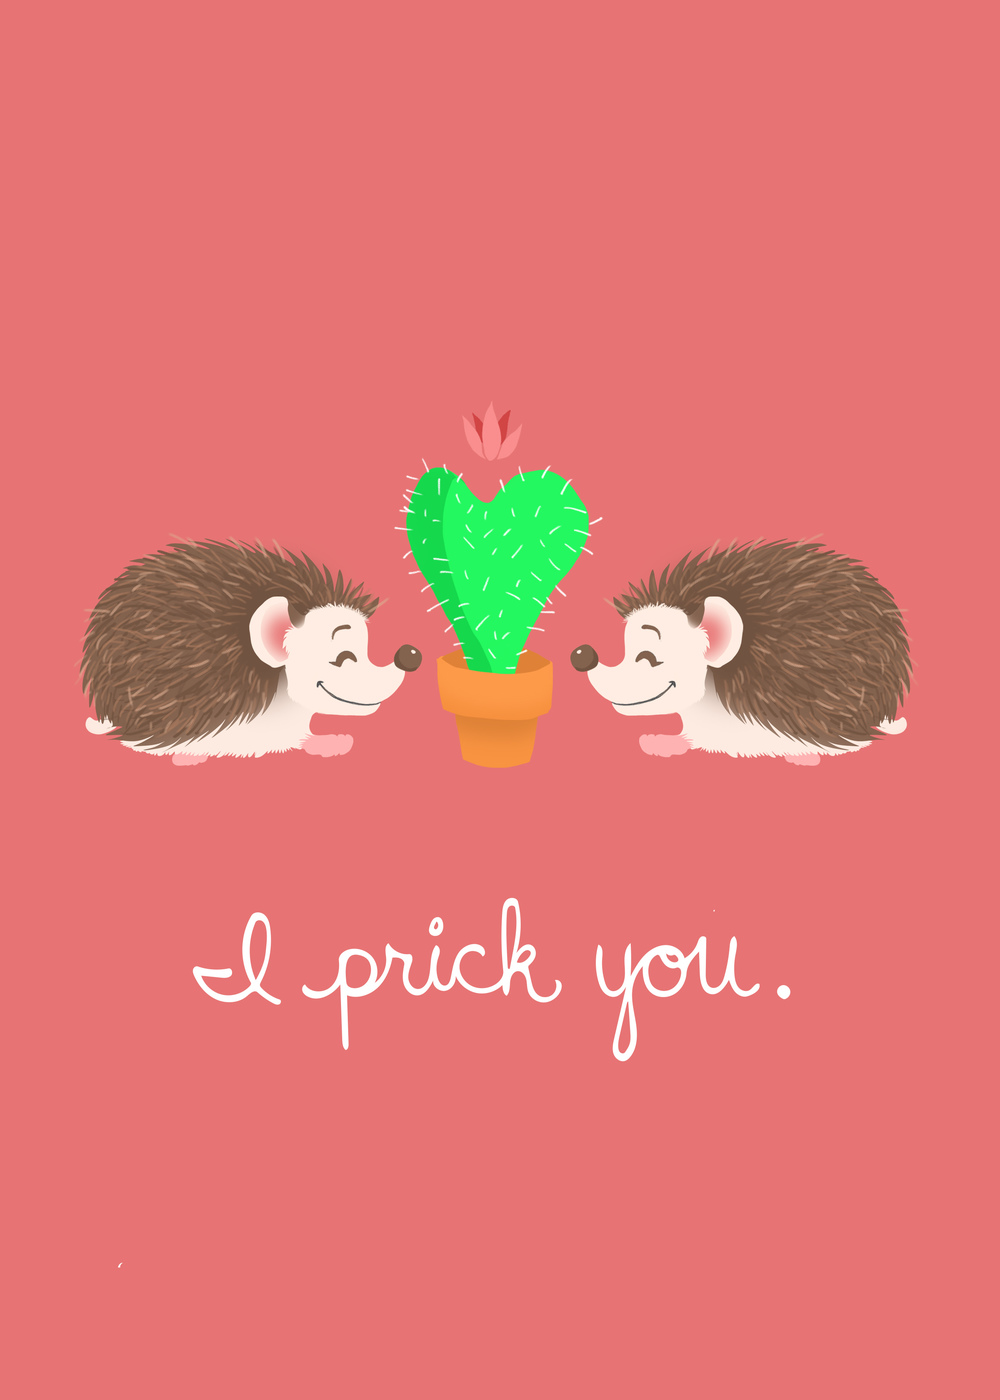 hedgehog-illustration-valentine